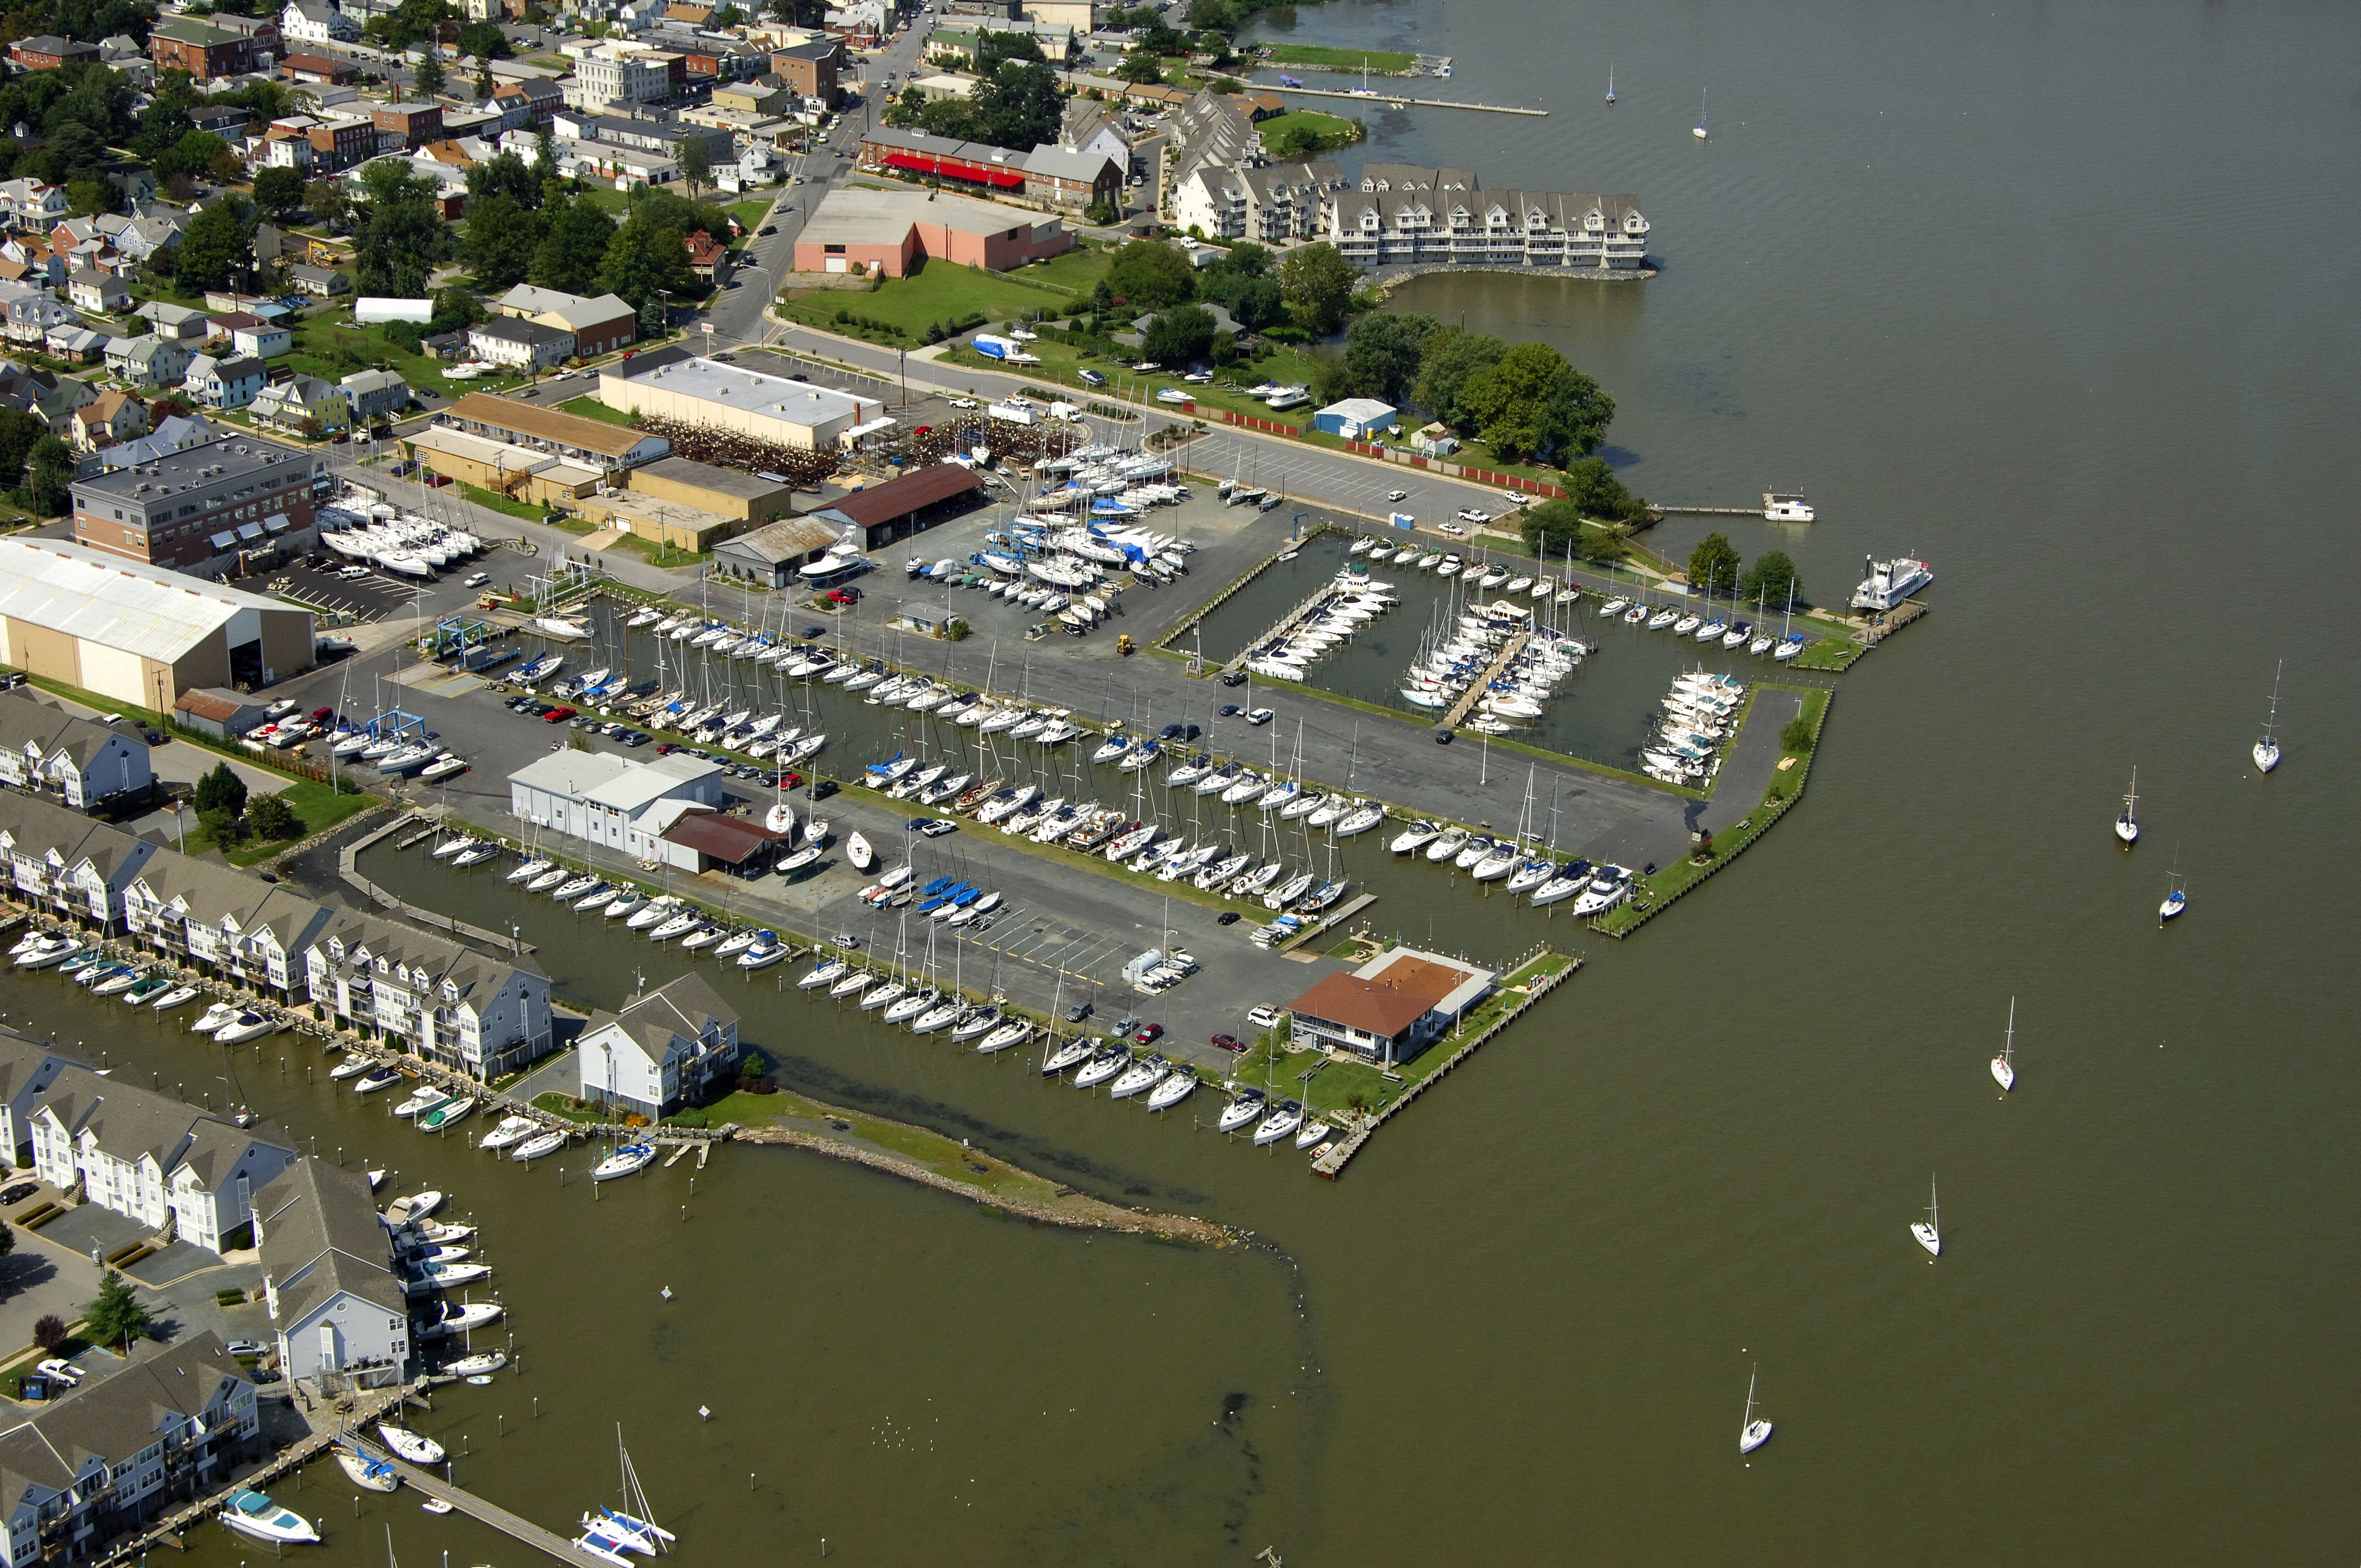 Tidewater Marina in Havre de Grace, MD, United States